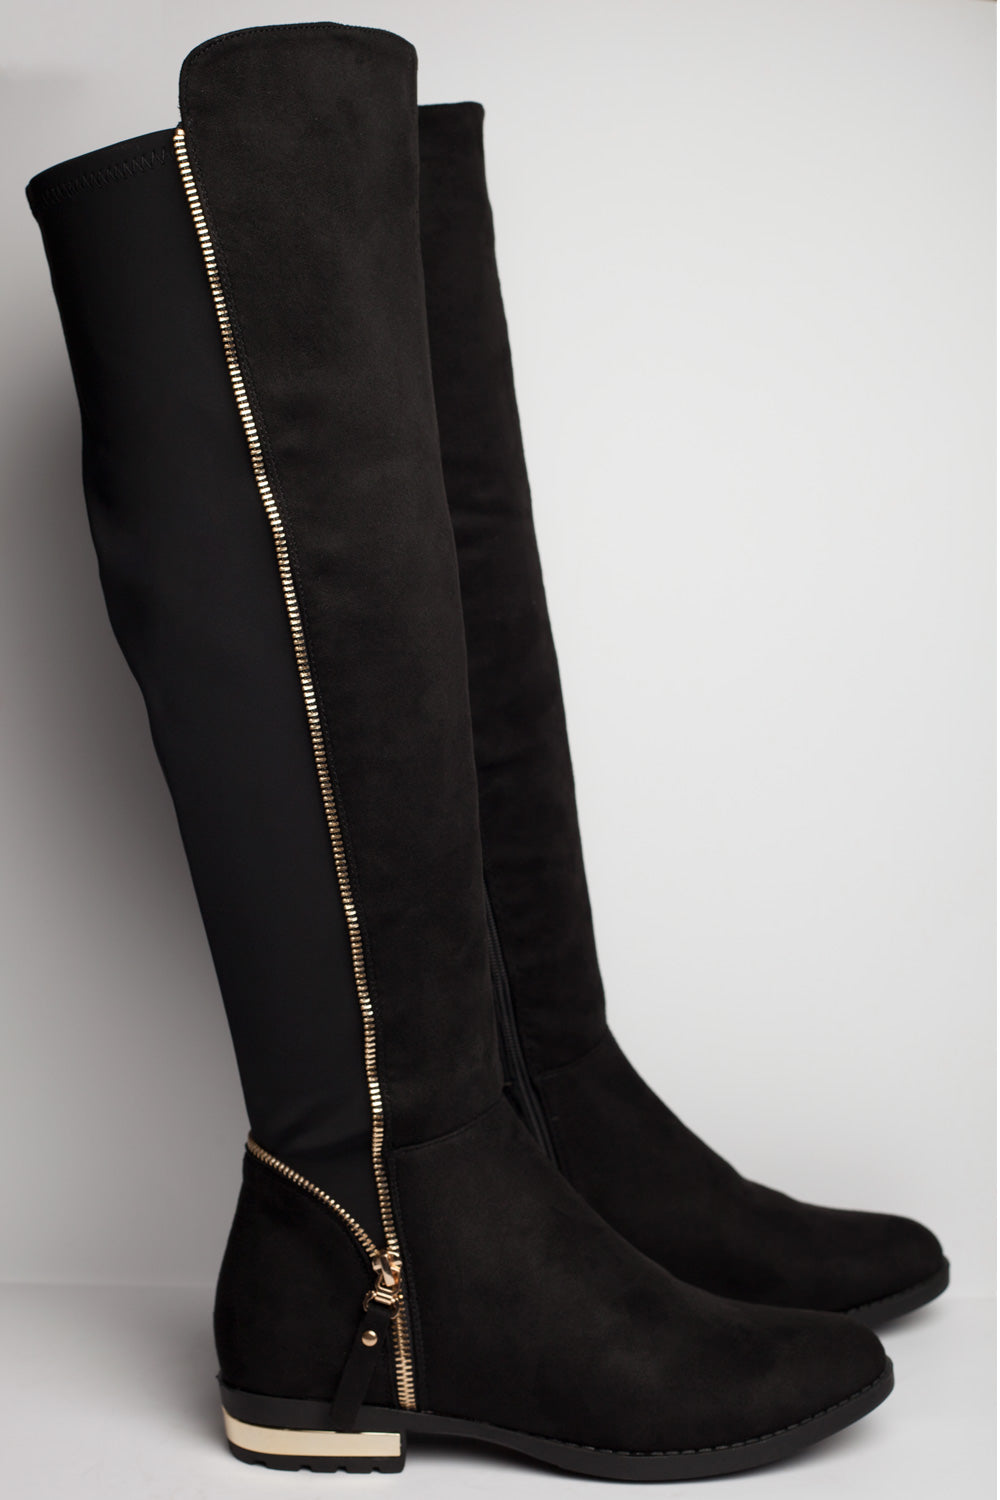 black suede knee high boots uk